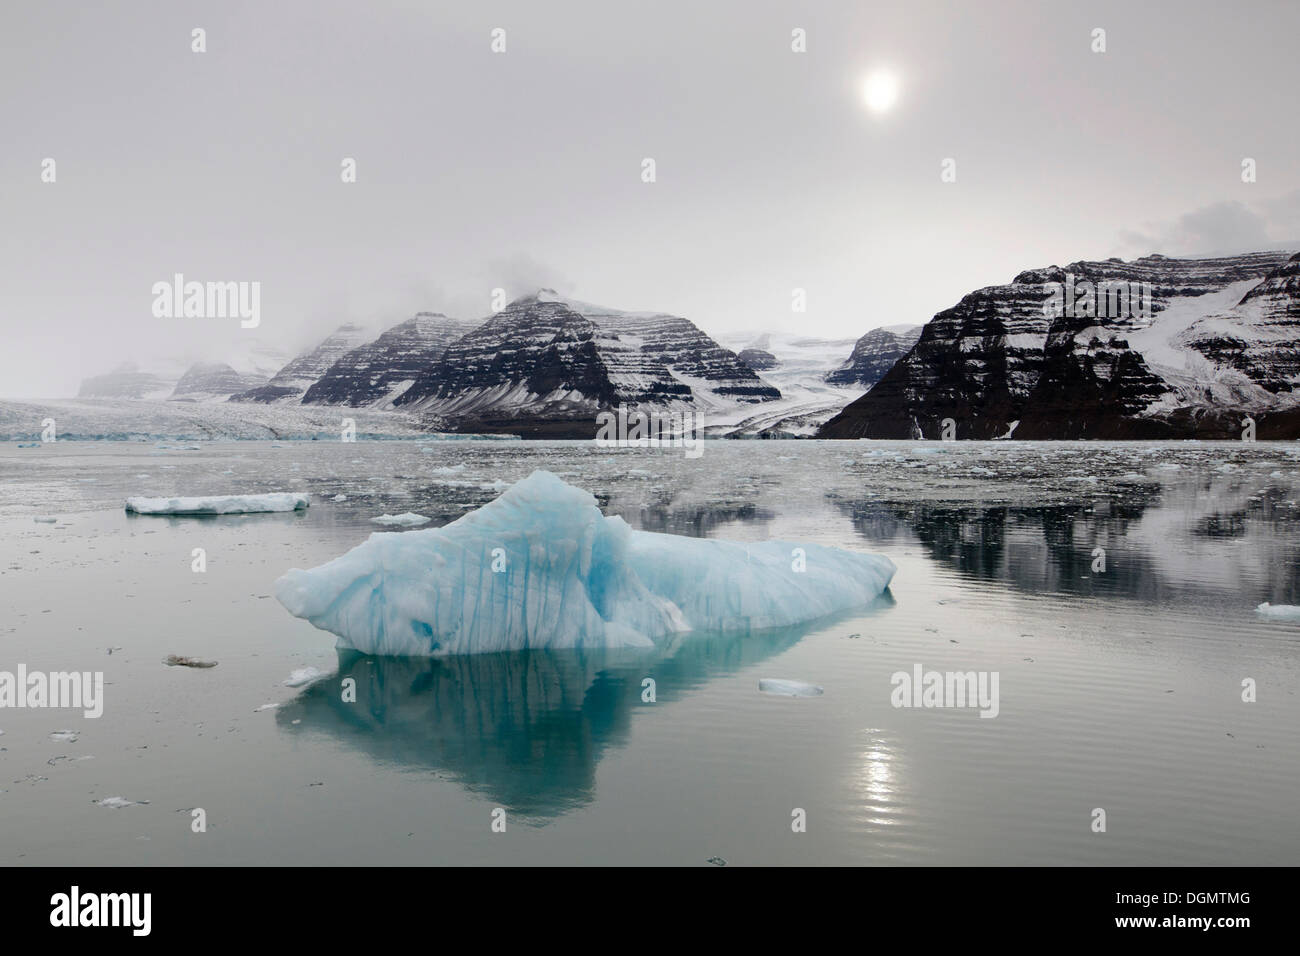 Reflection of icebergs, mountain scenery and the sun on an overcast day, Vikingebugt, Scoresbysund, Sermersooq, Greenland - Stock Image